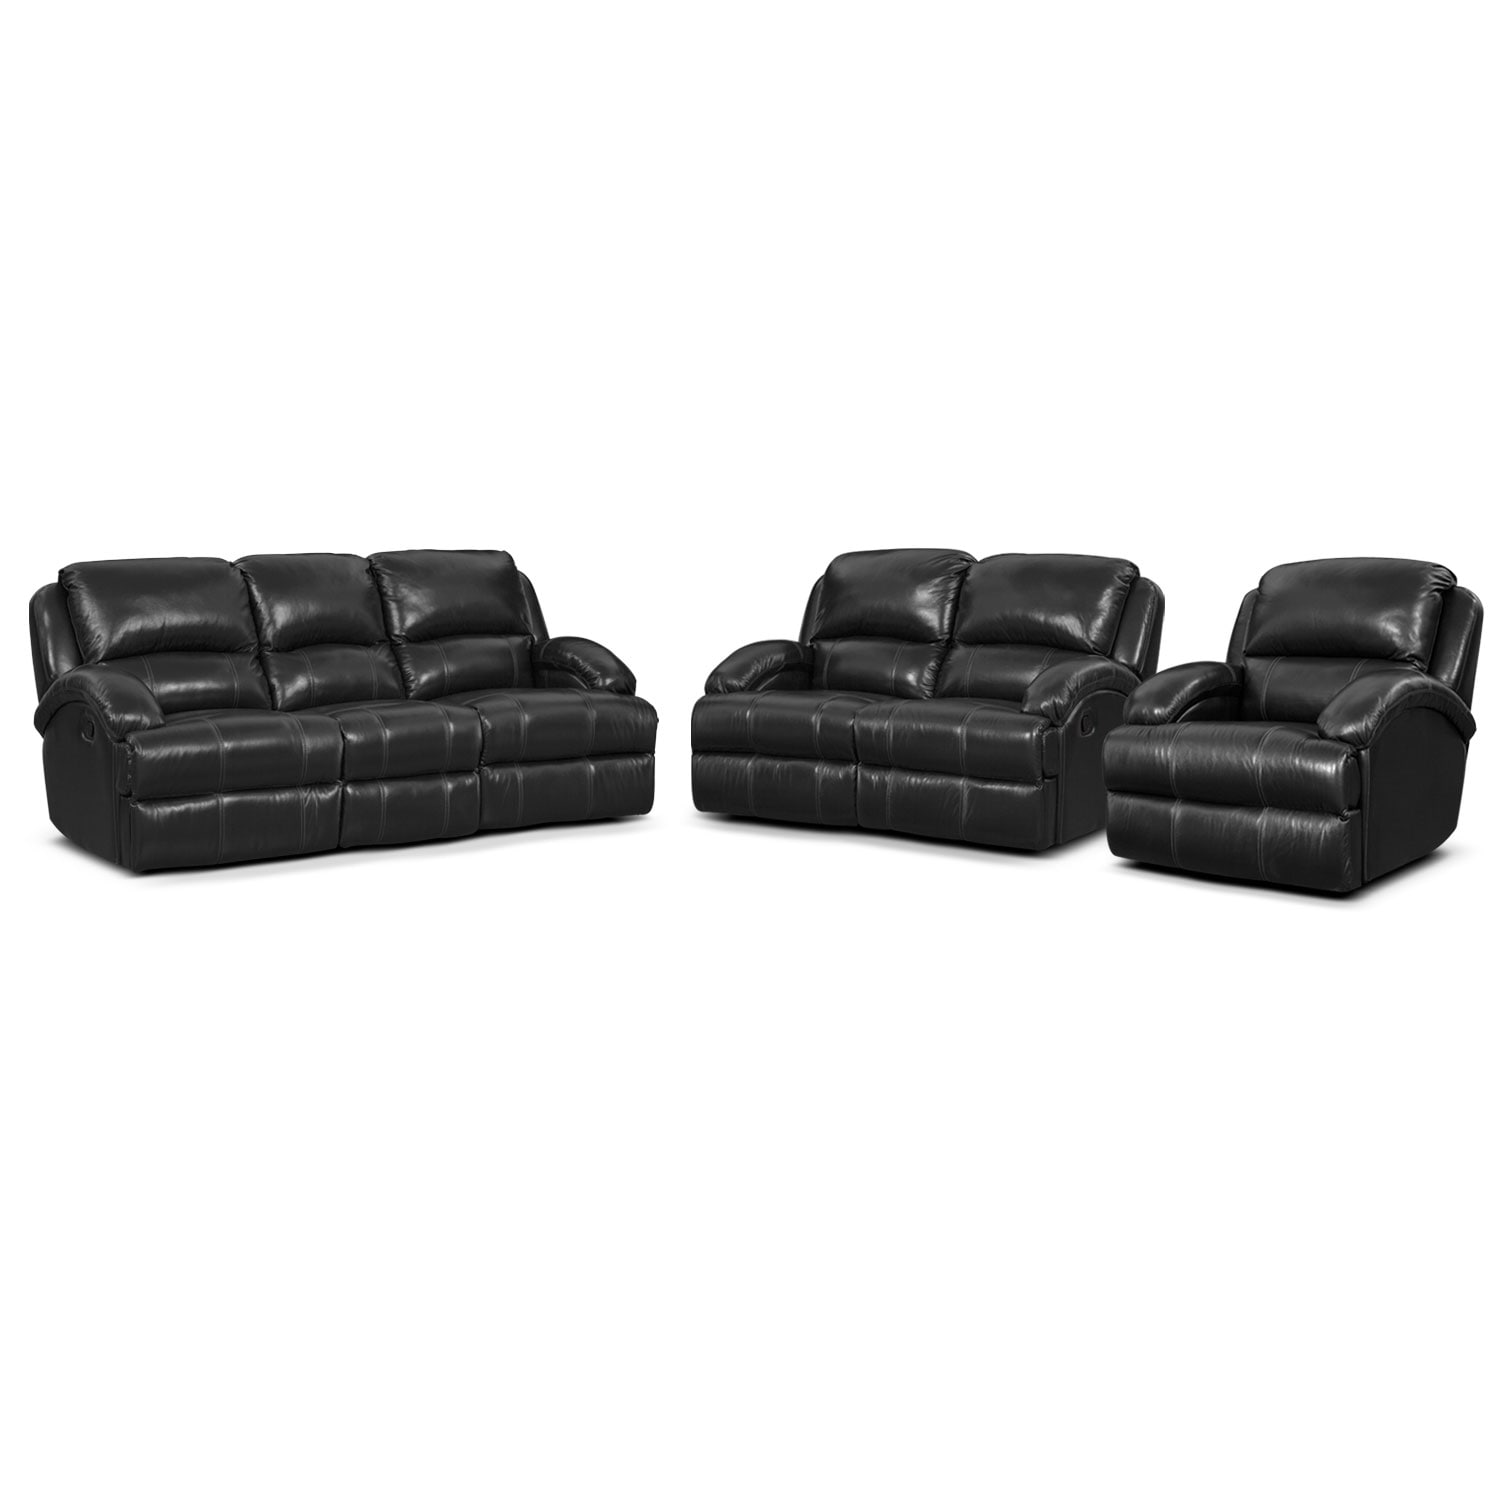 Nolan Dual Reclining Sofa, Reclining Loveseat and Glider Recliner Set - Black